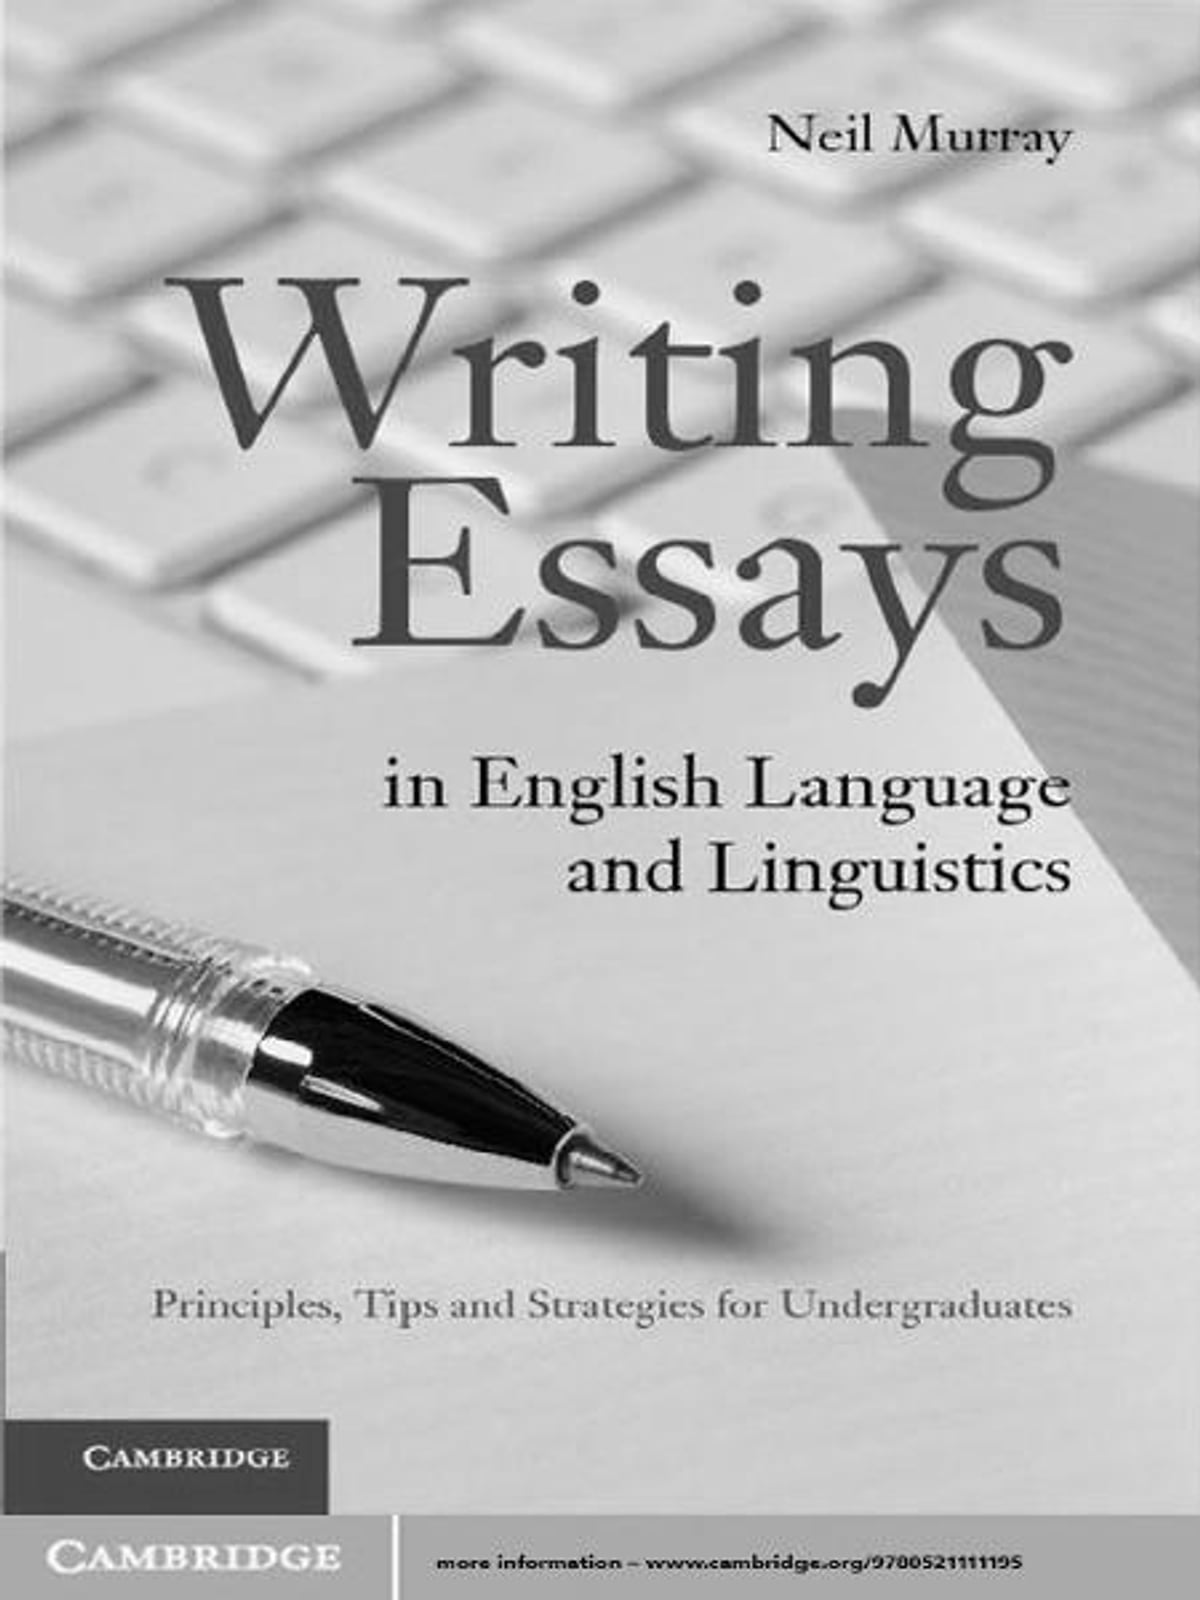 Research Papers Examples Essays Writing Essays In English Language And Linguistics Ebook By Dr Neil Murray     Rakuten Kobo Psychology As A Science Essay also 1984 Essay Thesis Writing Essays In English Language And Linguistics Ebook By Dr  Business Argumentative Essay Topics